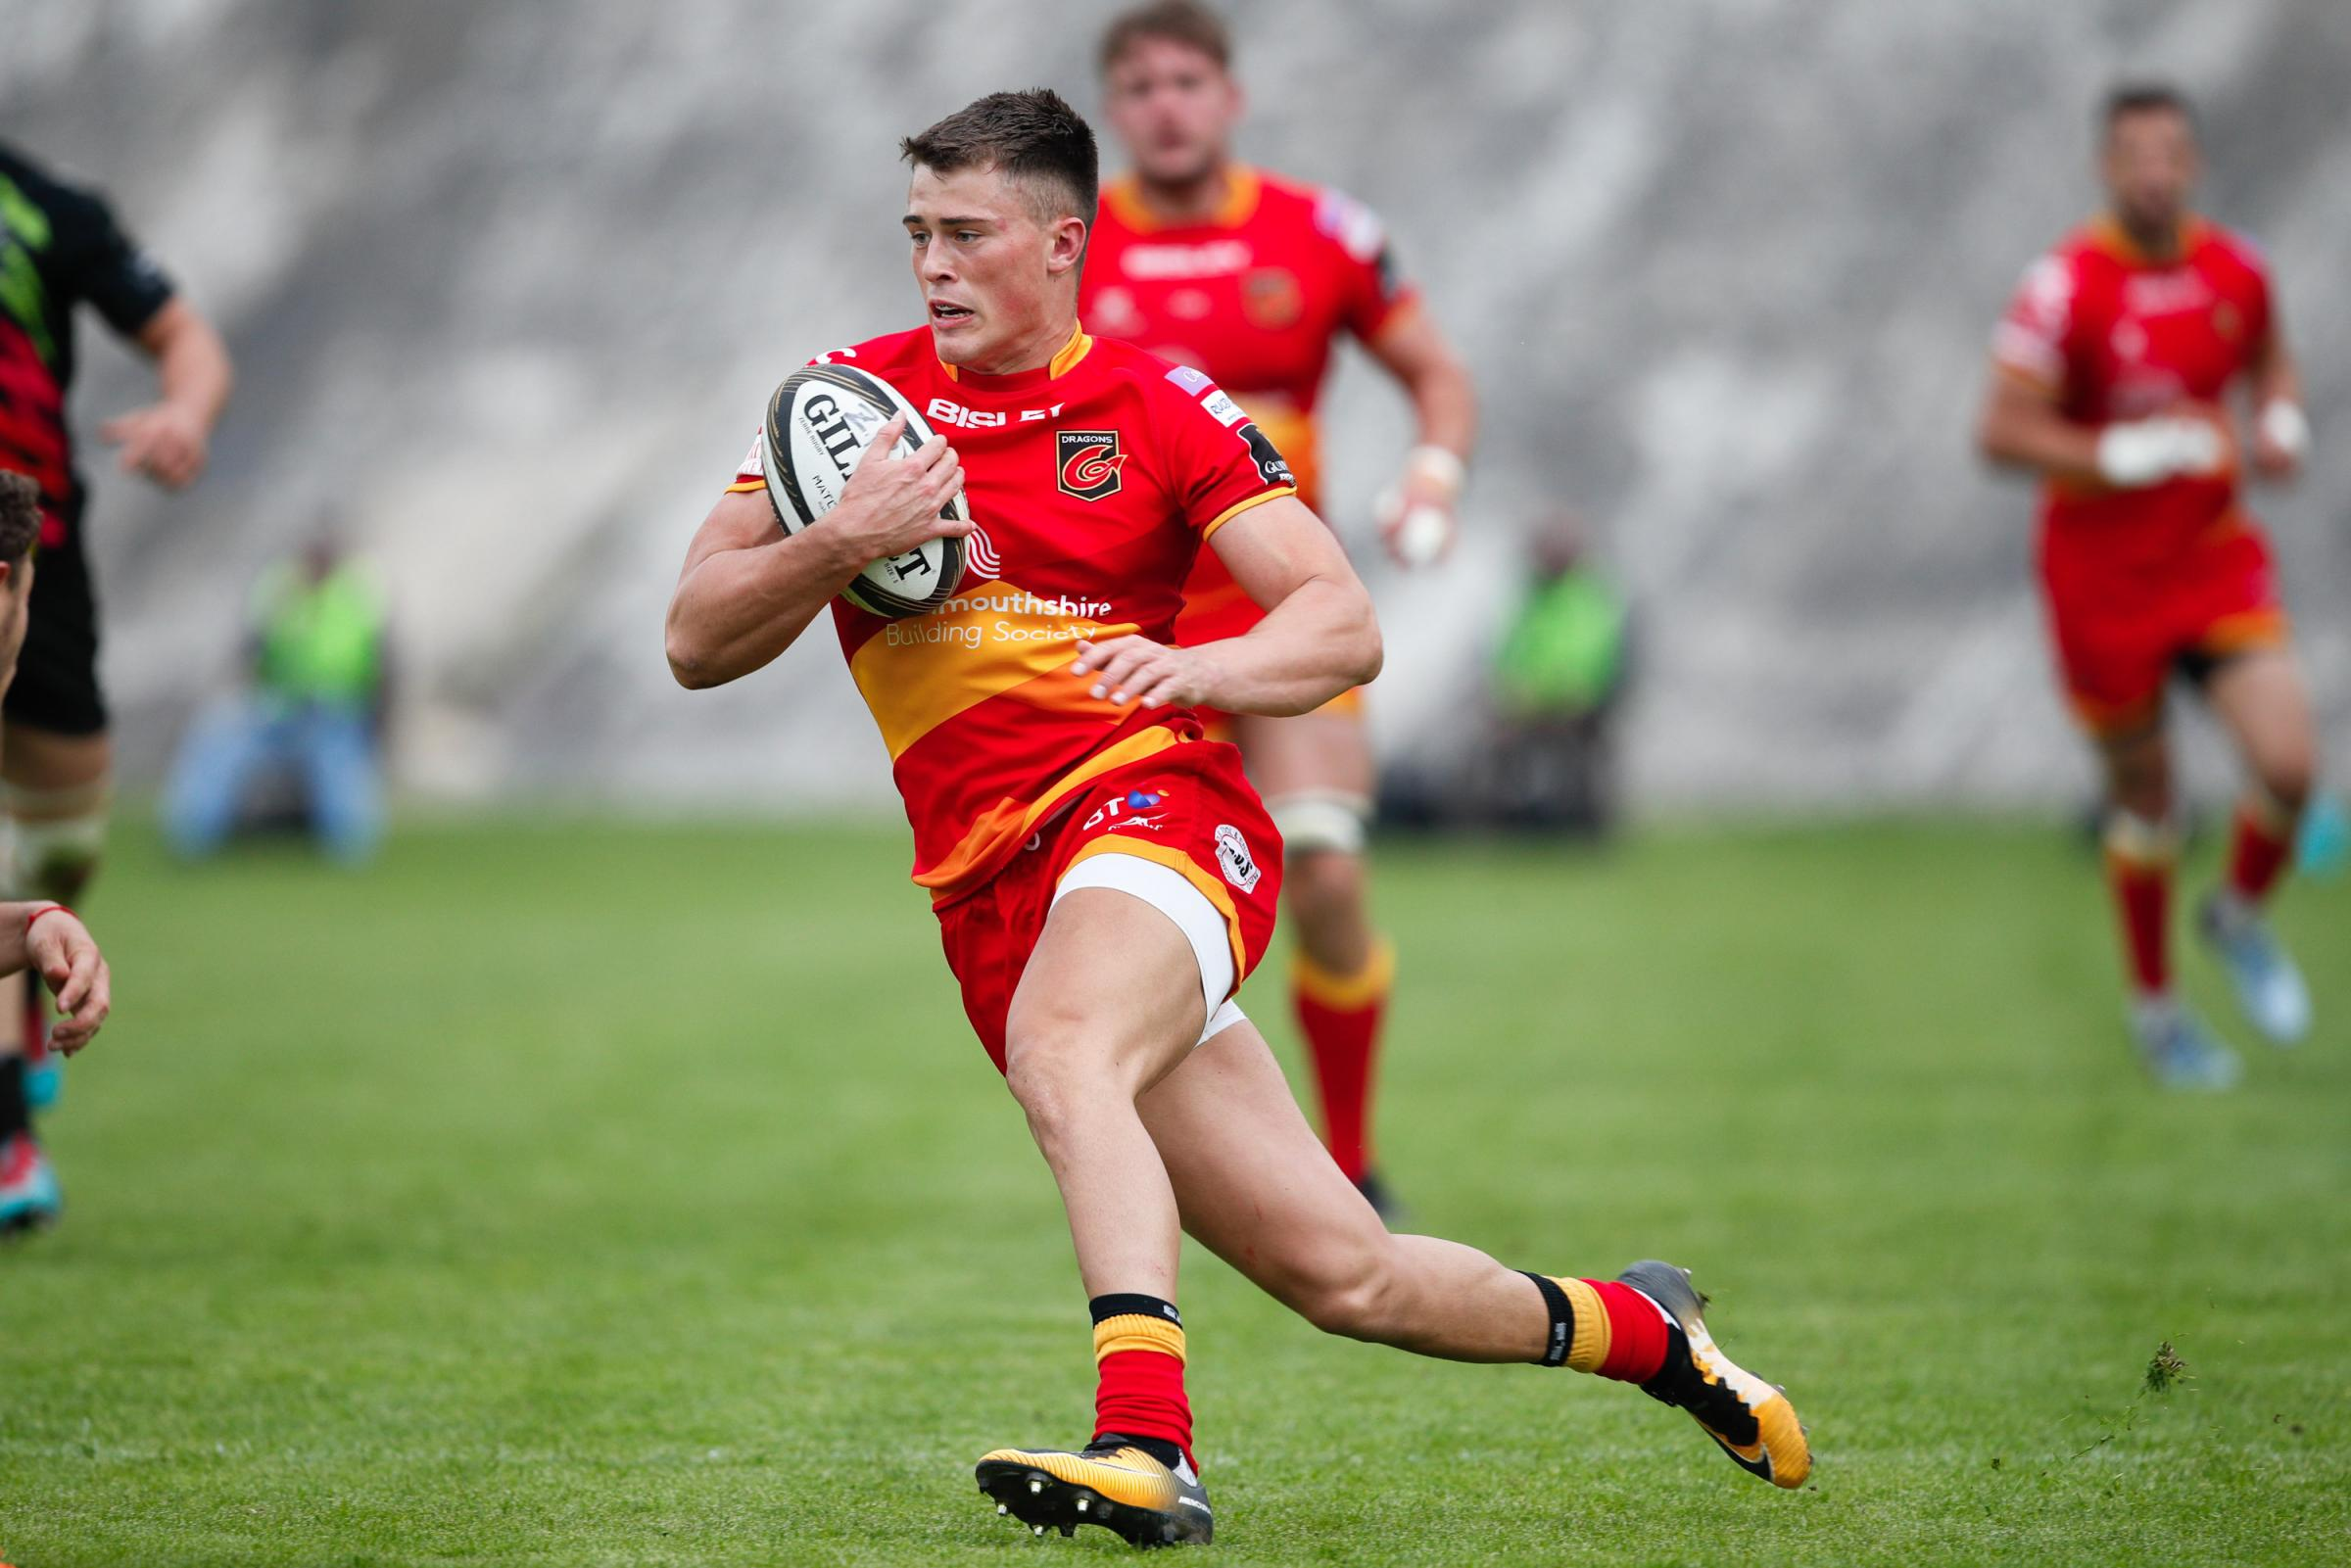 WALES CALL: Jared Rosser and his Dragons teammate Will Talbot-Davies will play at the Rugby World Cup Sevens